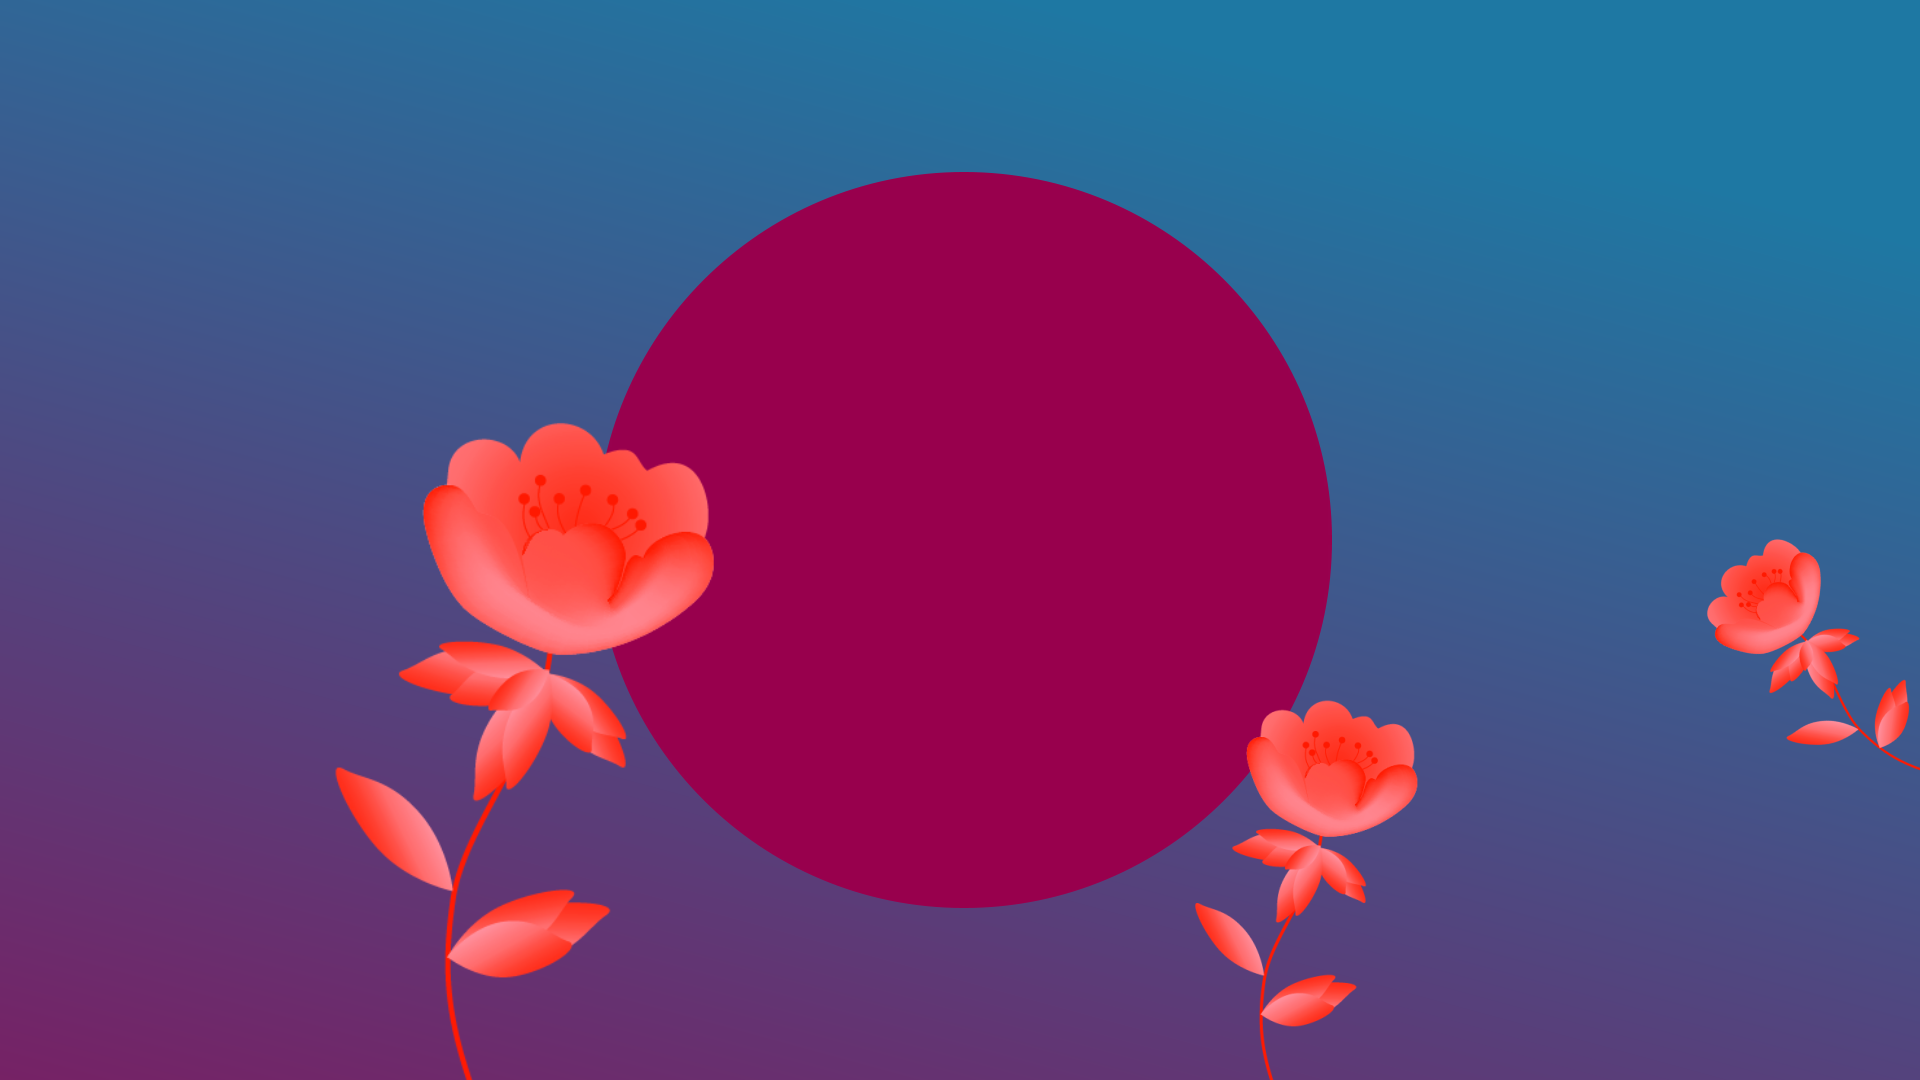 Persona marketing, inner circle of digital marketing, purple circle on blue background with sprouting red flower.